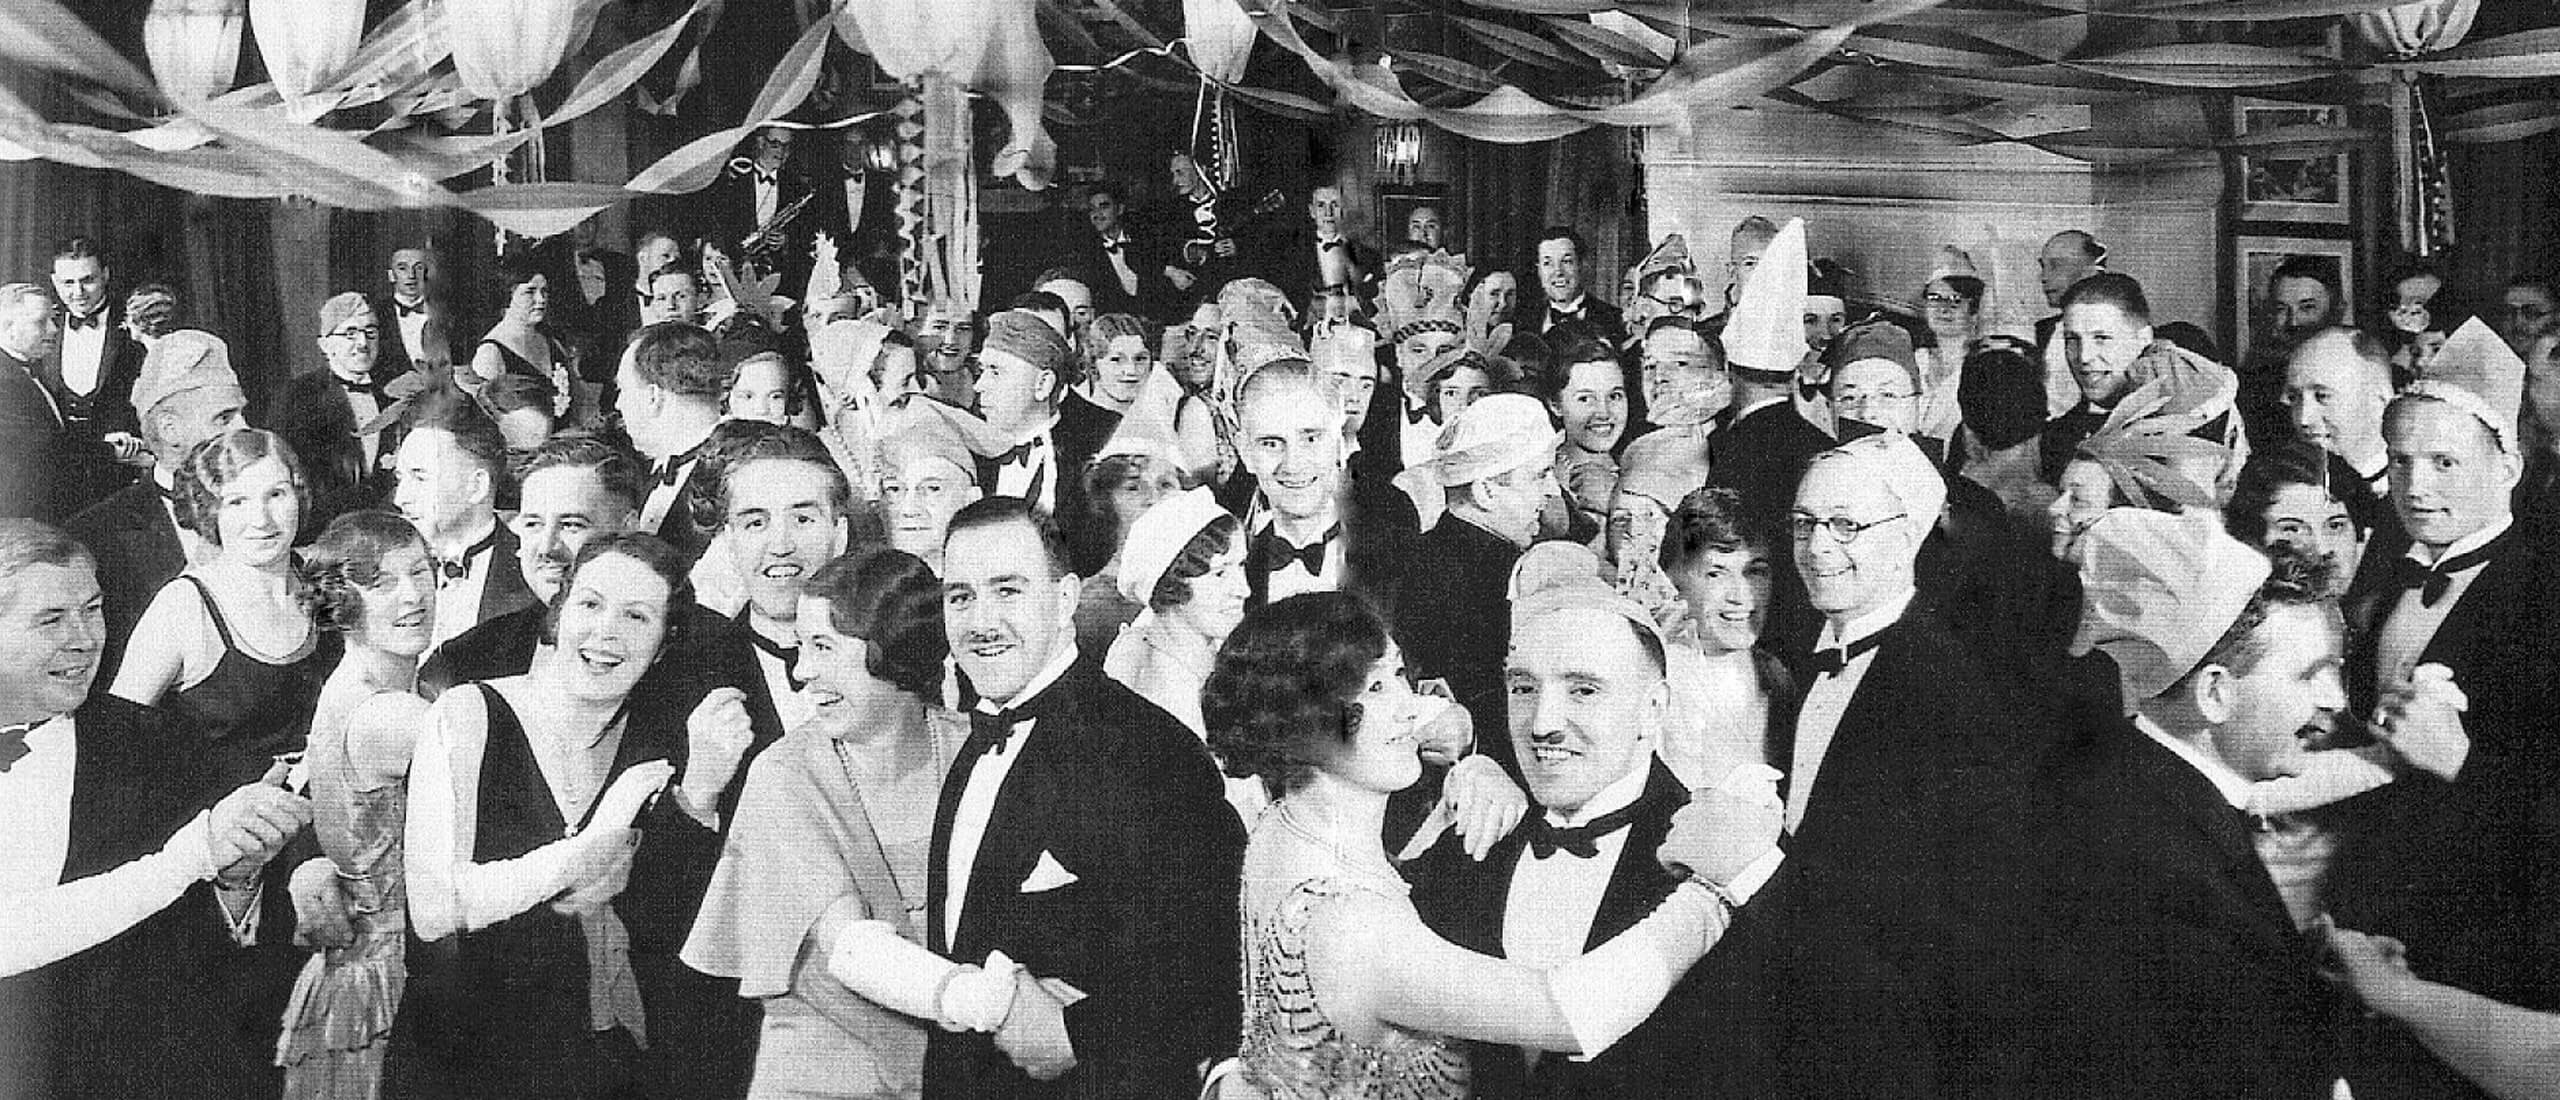 1938 – The Annual Winter Dance